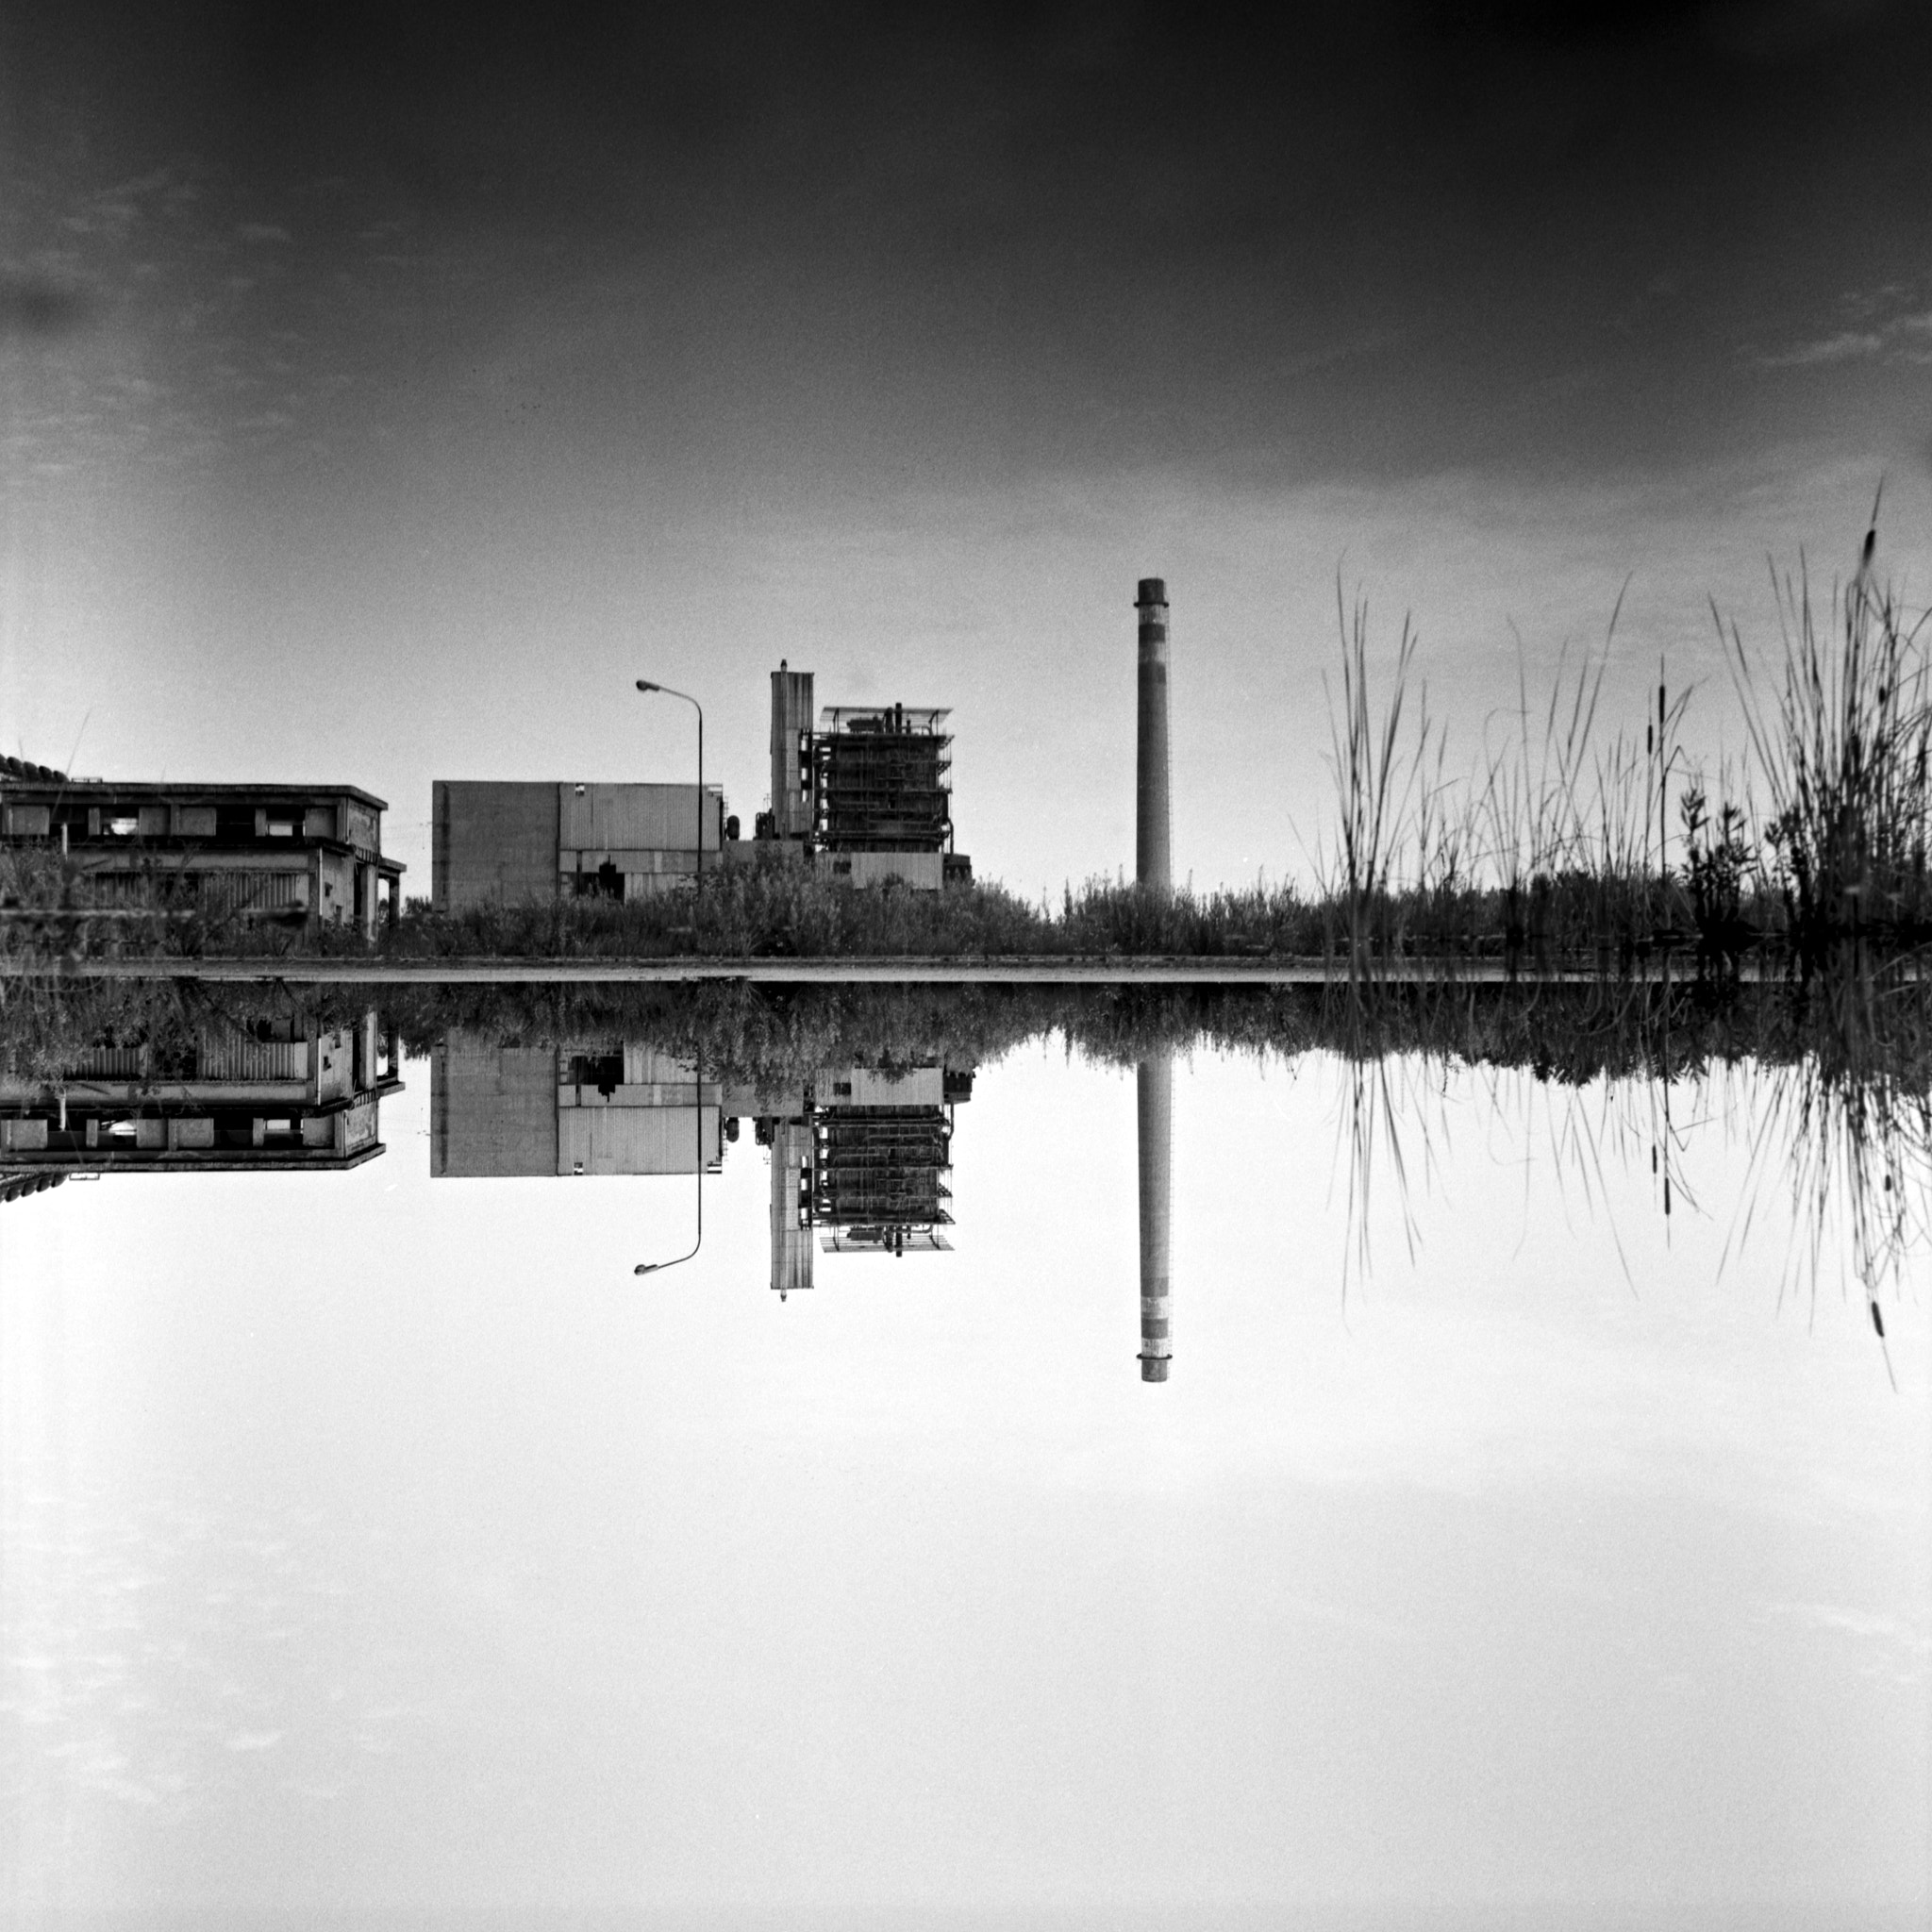 Photograph Site Specific: Aluminium Mill #1 by Marco Fragomeni on 500px